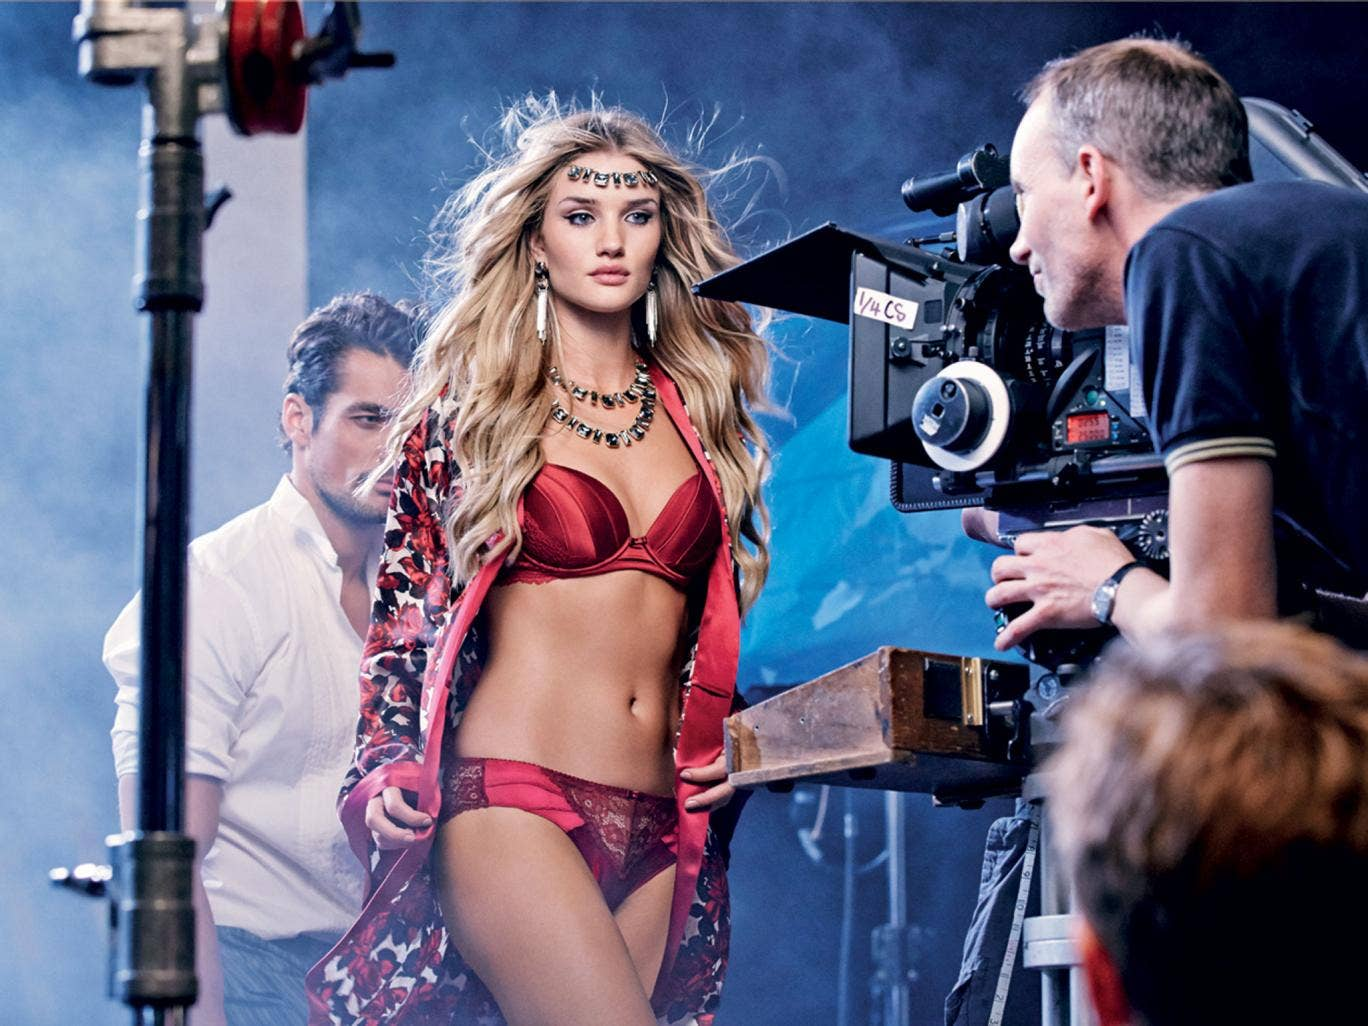 Even the model Rosie Huntington-Whitely couldn't help M&S's flagging sales